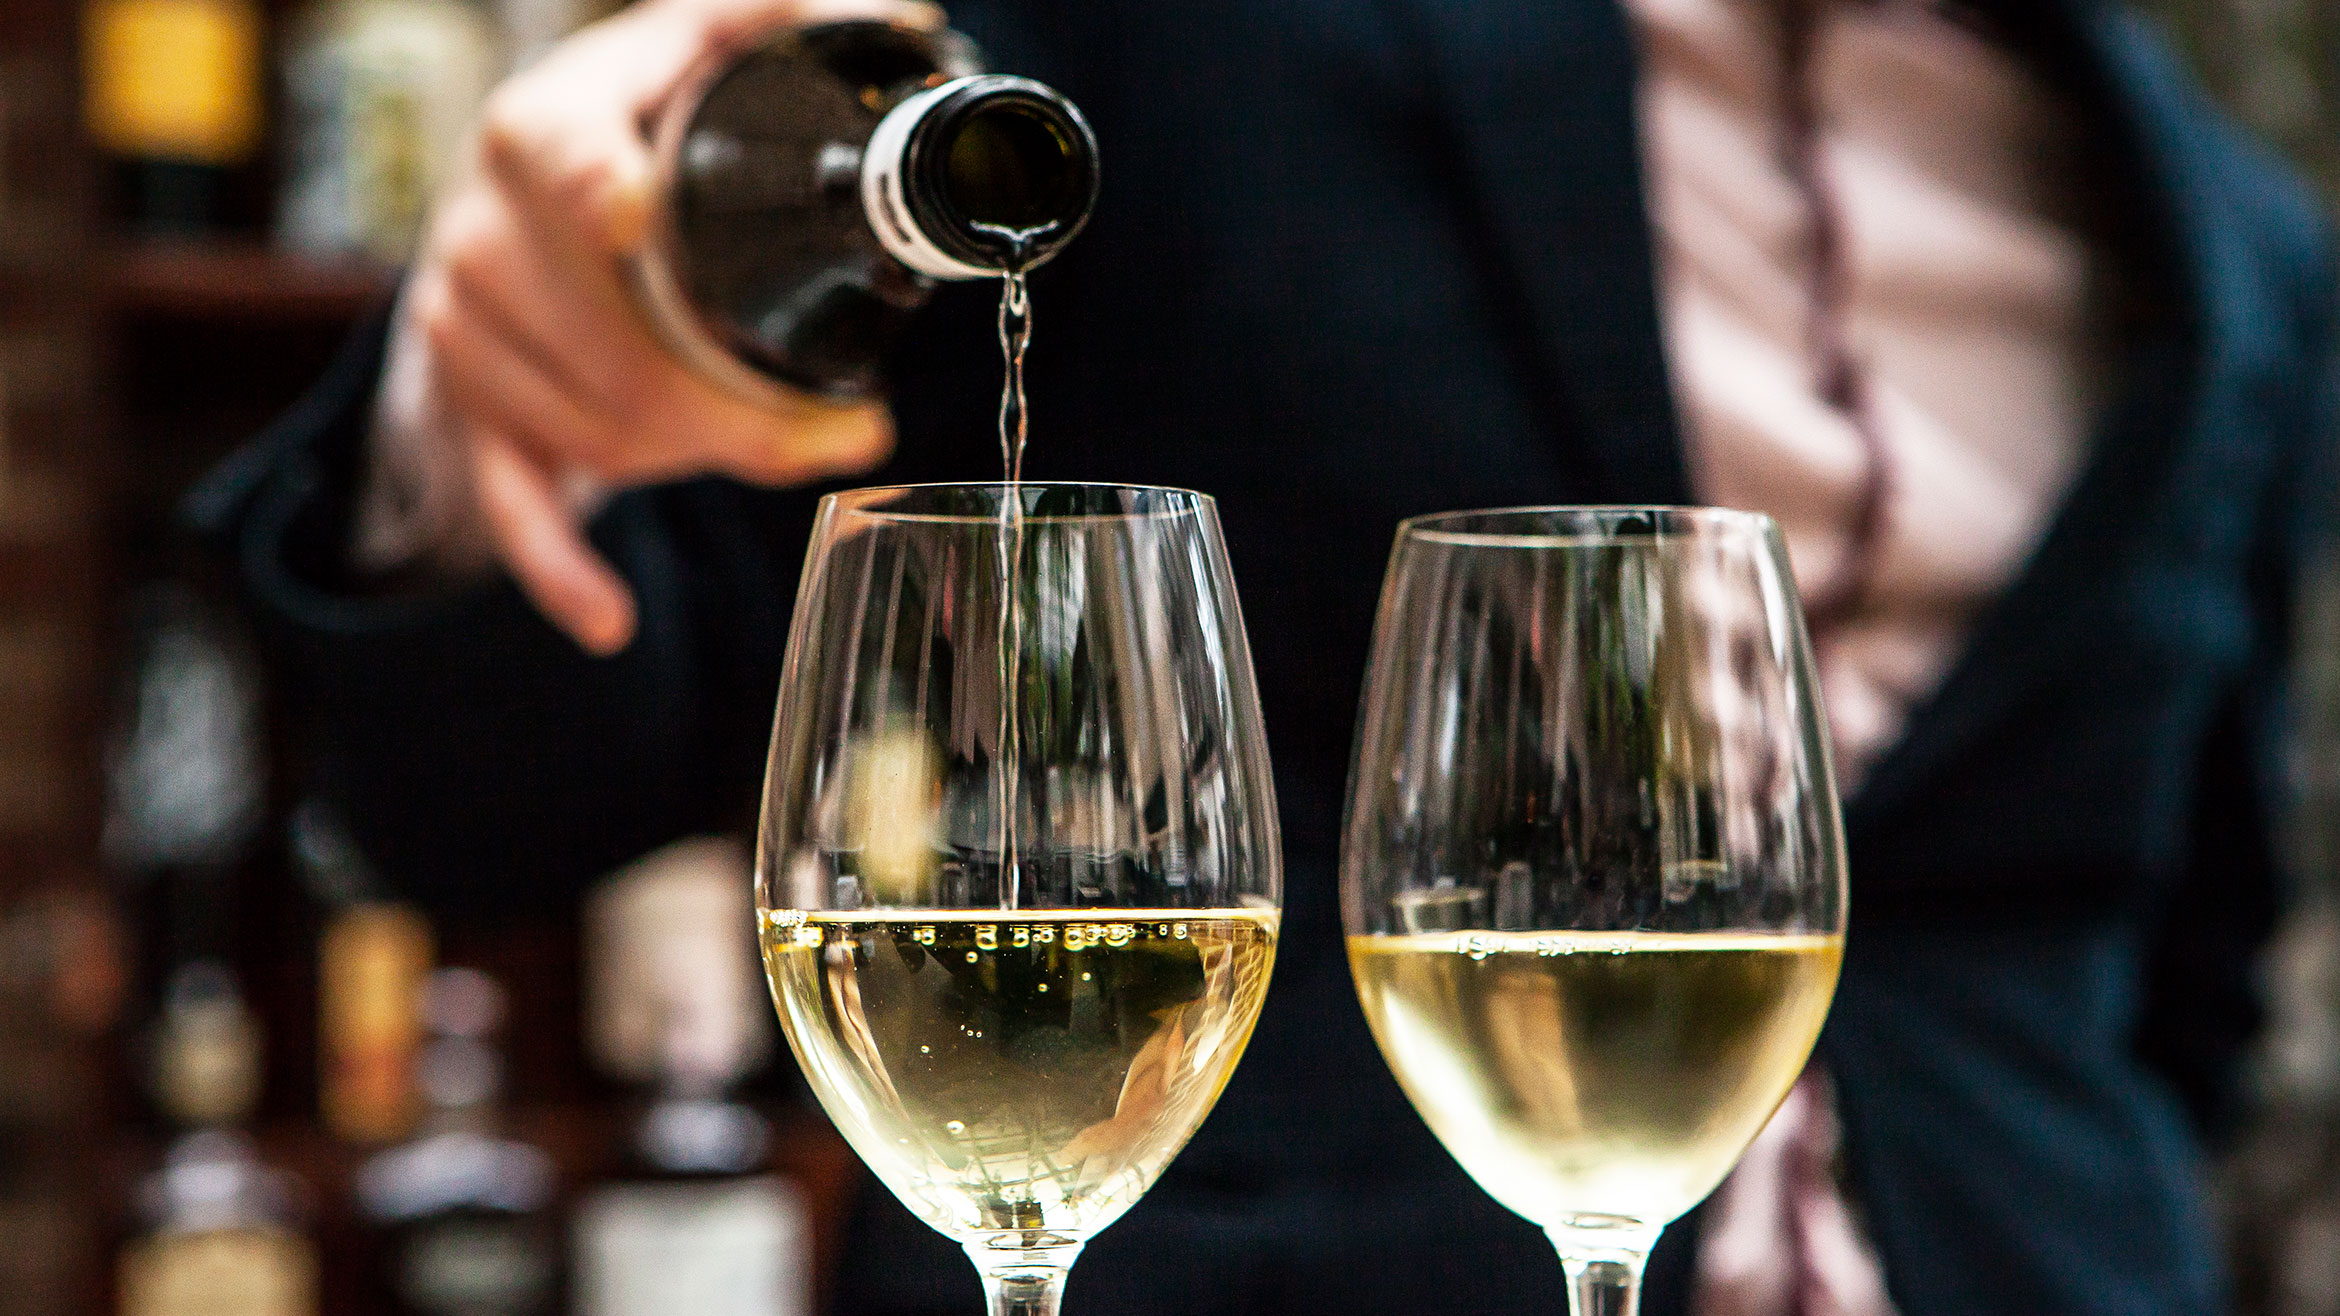 Article-Second-Cheapest-Wine-By-the-Glass-Restaurant-Dining-NYC-Gramercy-Tavern-Juliette-Pope-David-Lynch-Jose-Andres.jpg